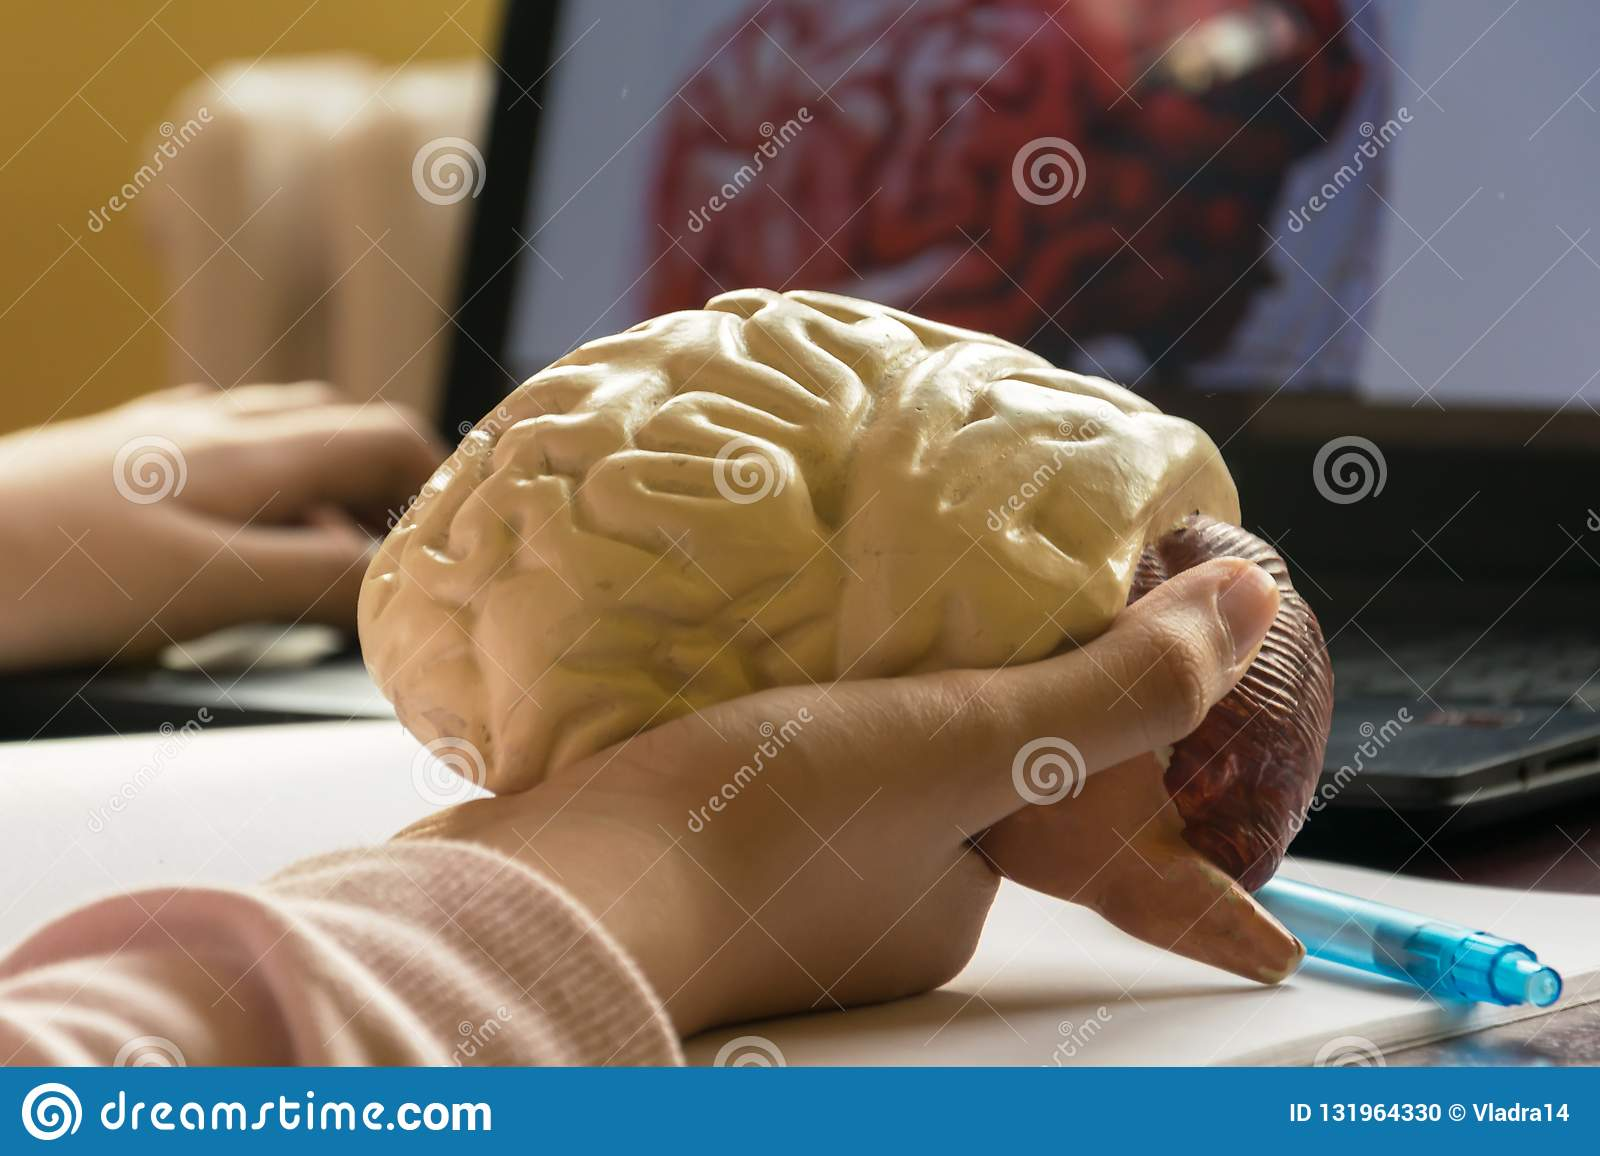 Study Of Human Brain From 3d Model Stock Photo - Image of